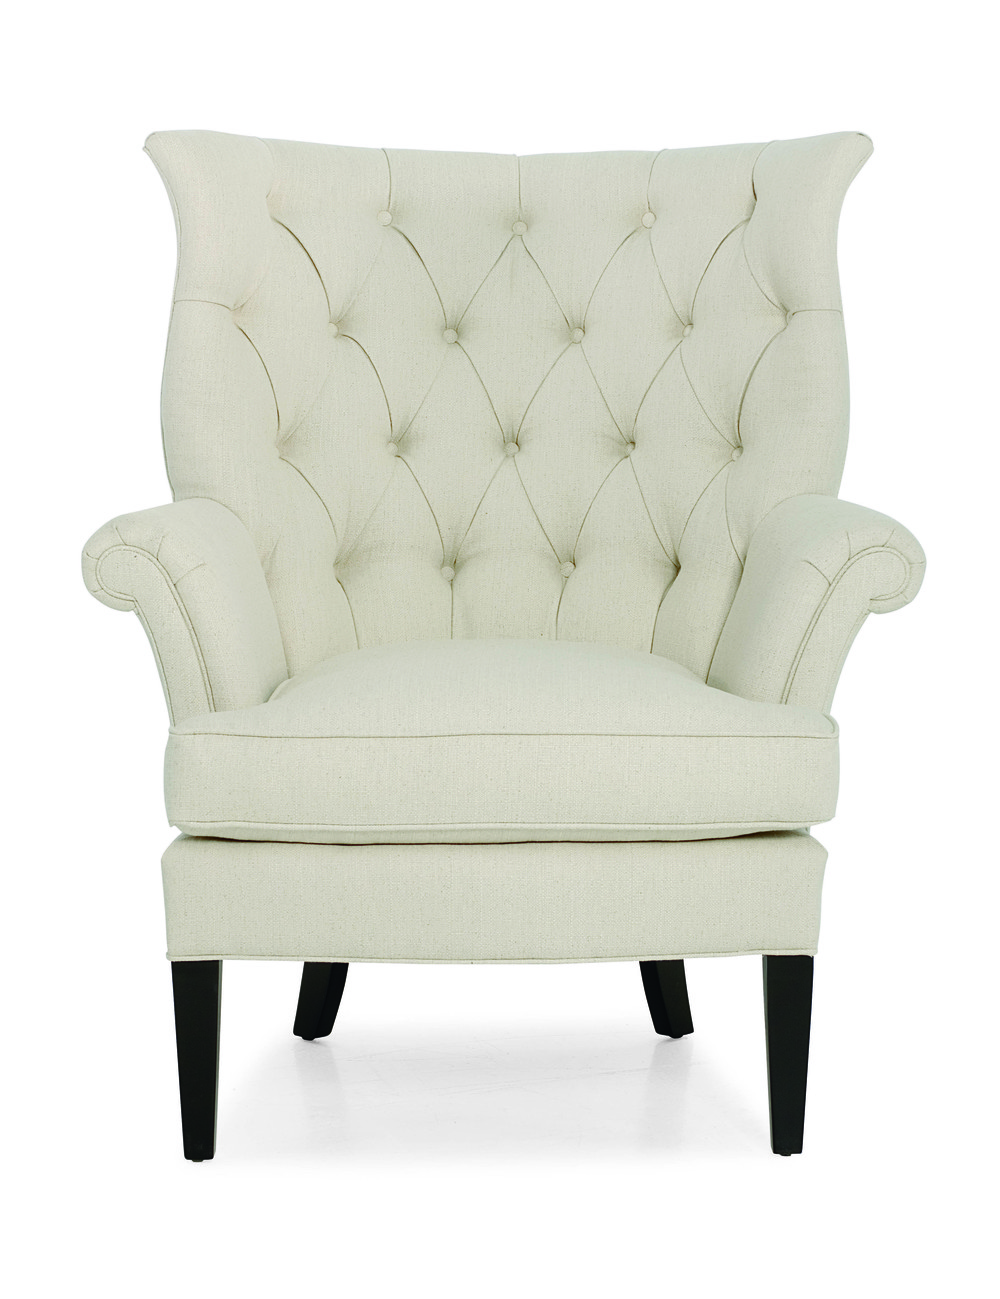 CR Laine Furniture - Devereux Chair